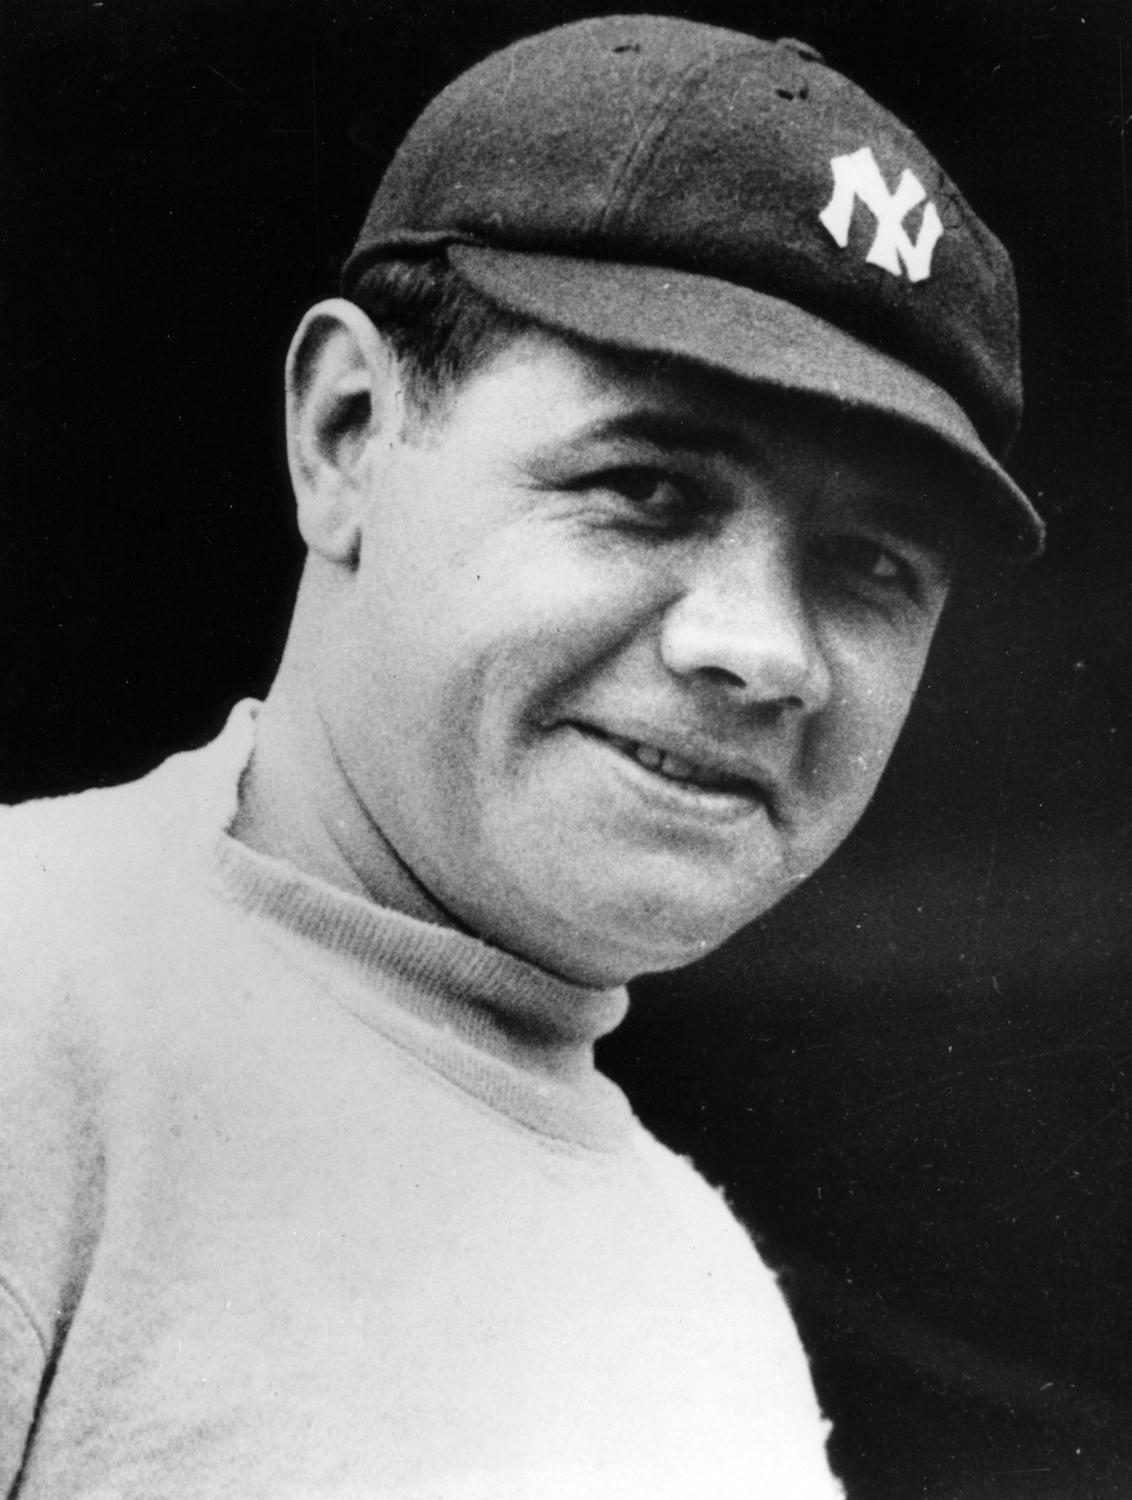 High Resolution Wallpaper | Babe Ruth 1132x1500 px